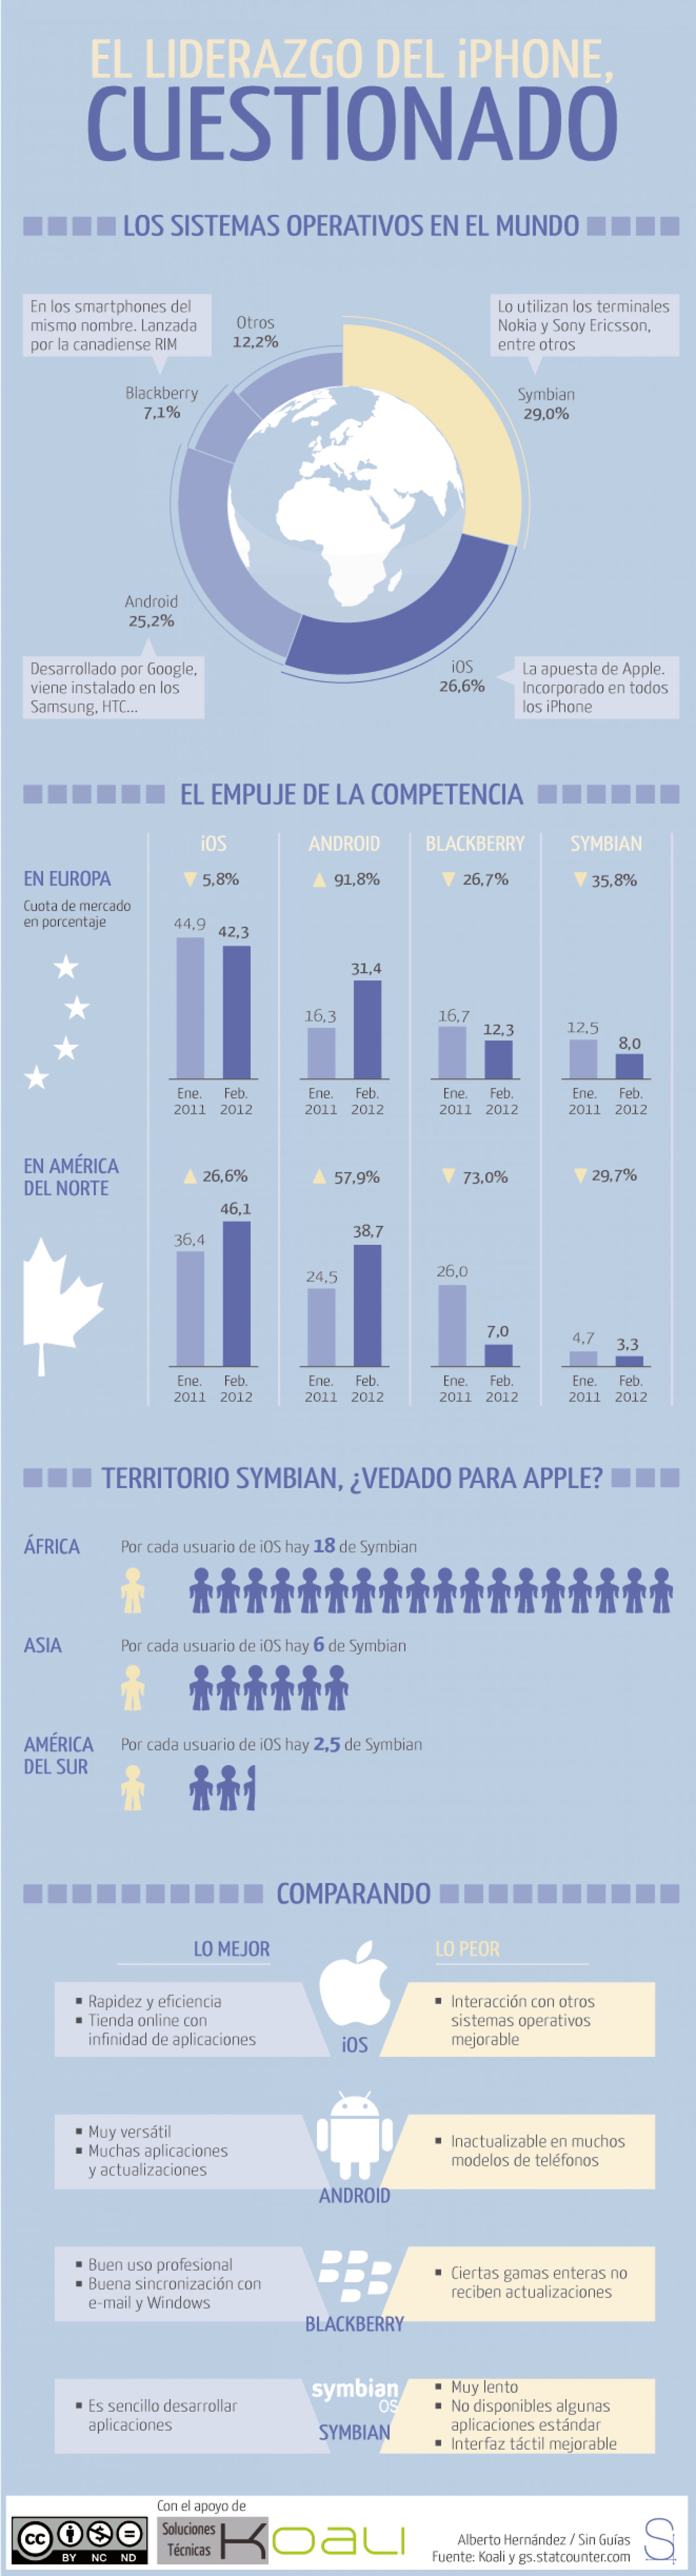 iPhone's leadership, questioned Infographic